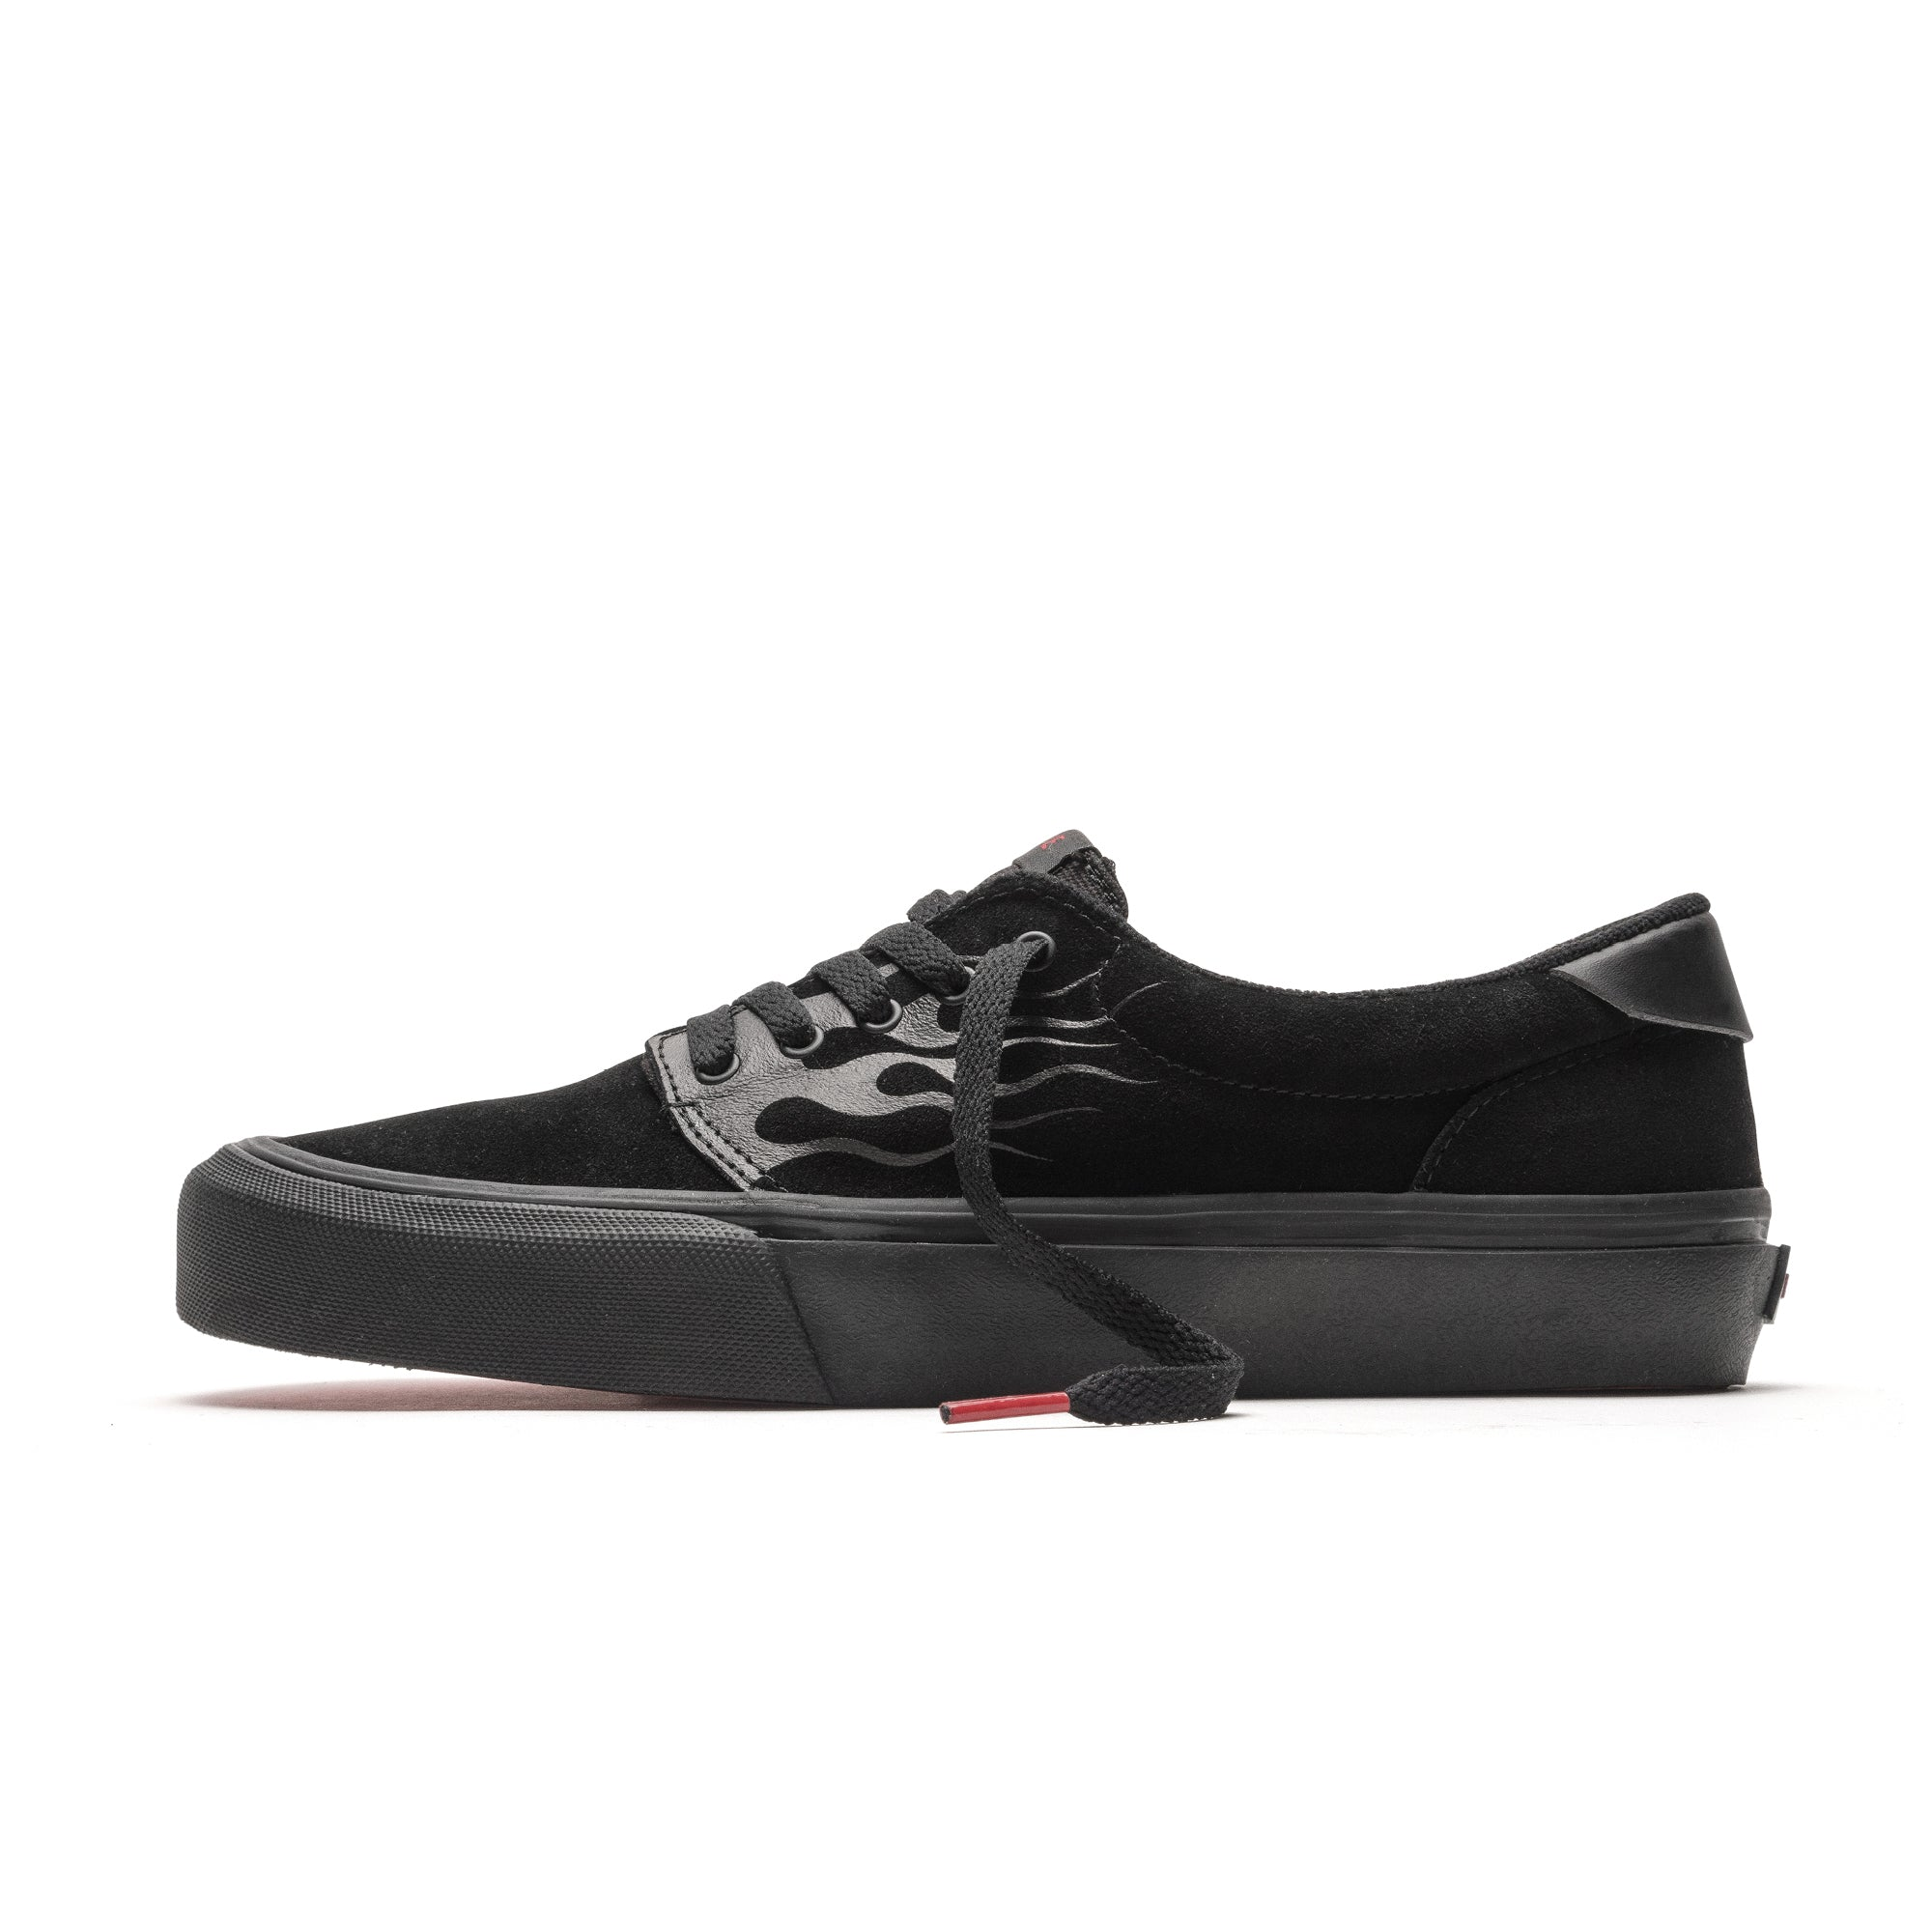 FAIRFAX - BLACK FLAME SUEDE